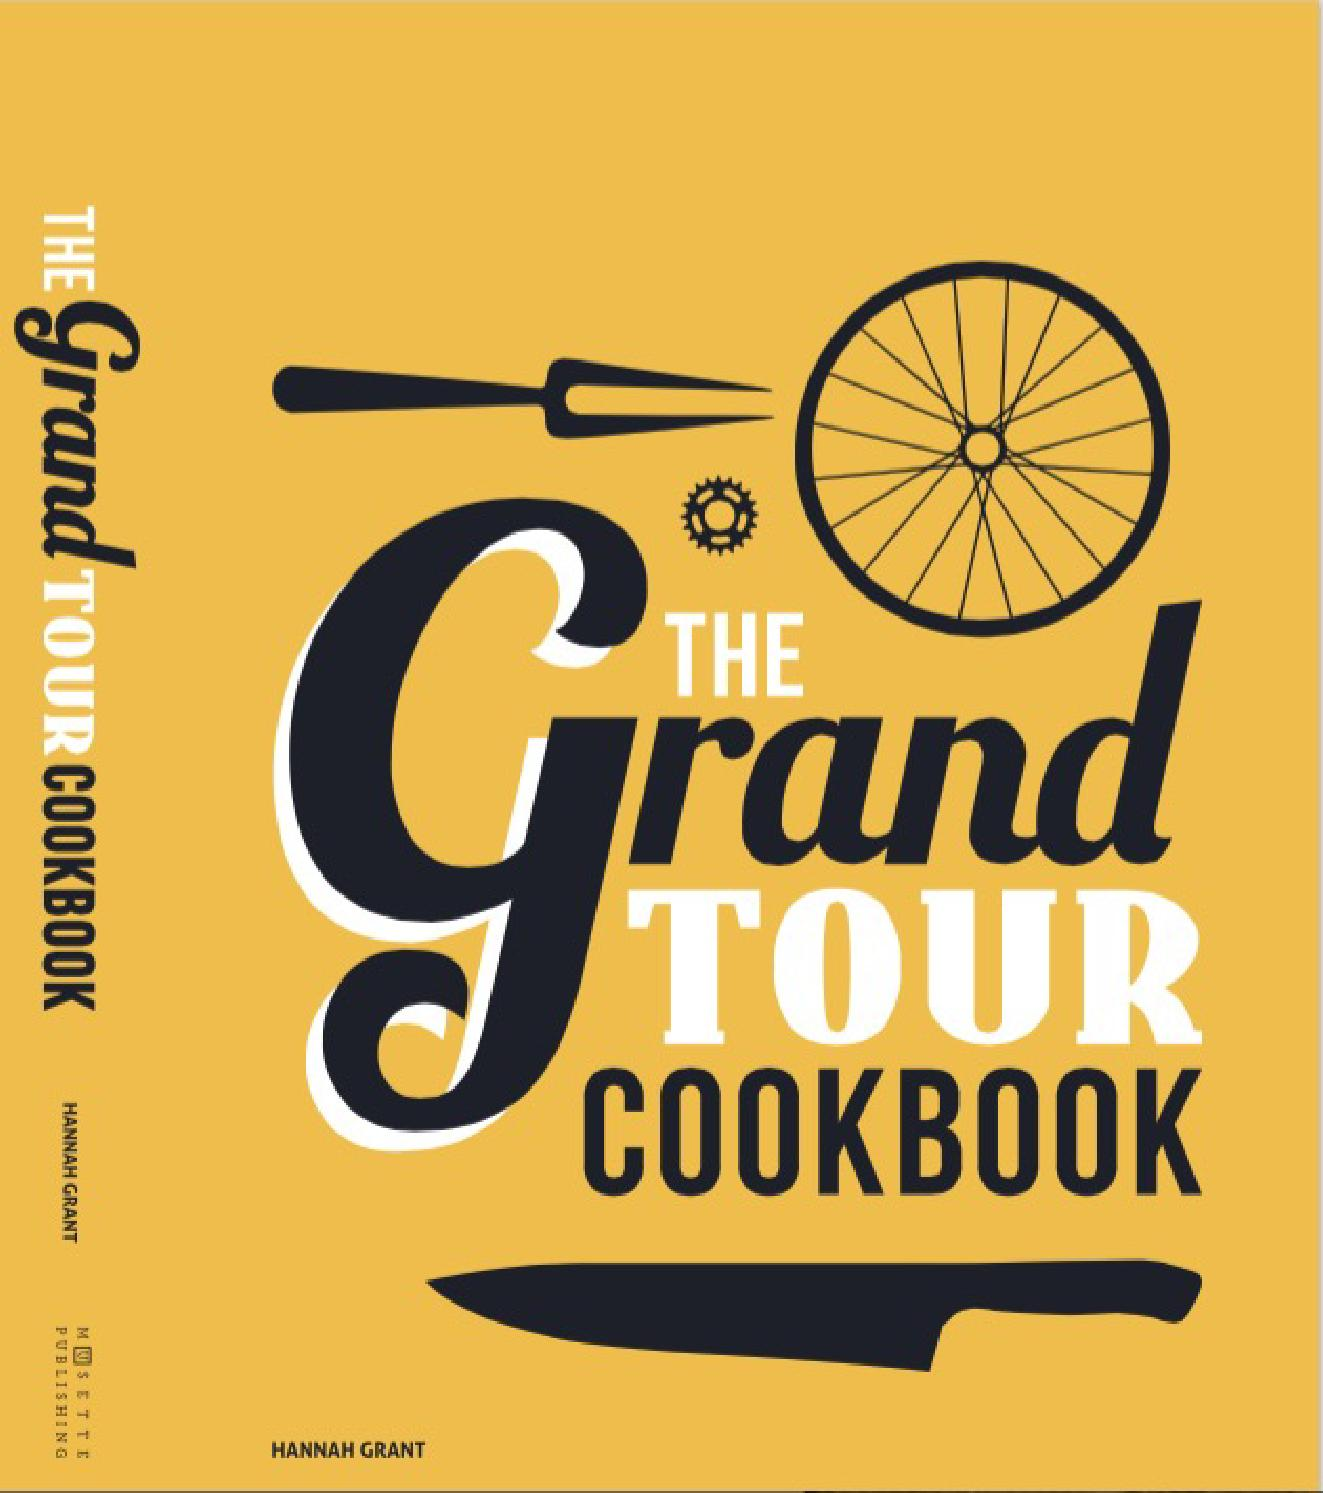 The Grand Tour Cookbook Preview By 23mm Issuu